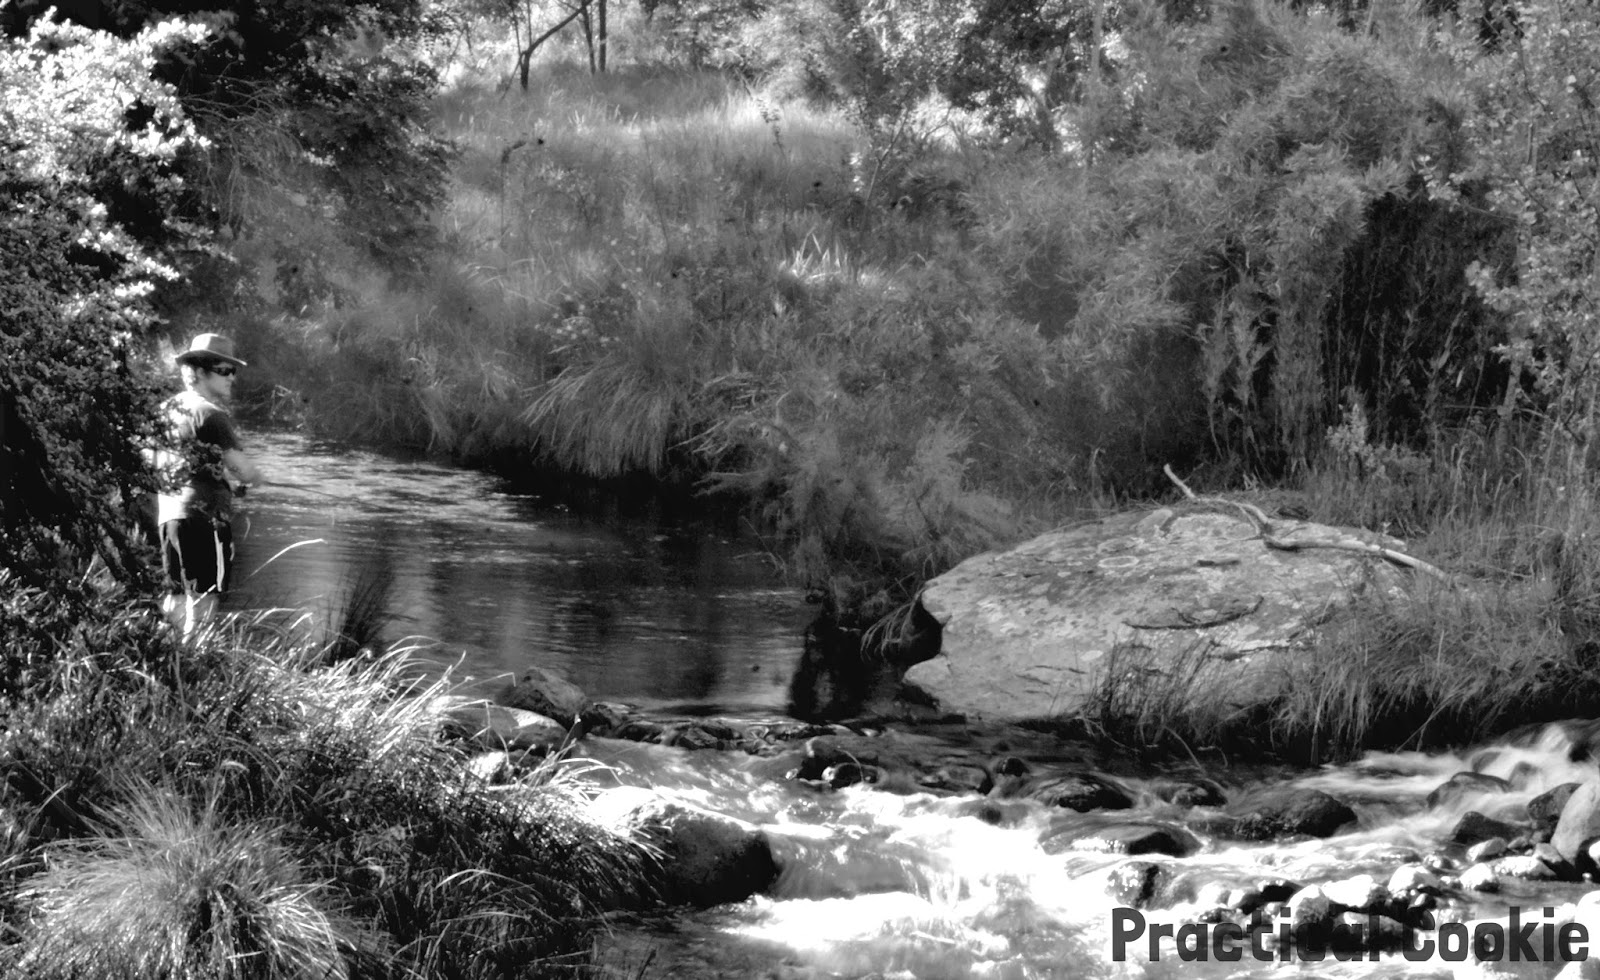 Fishing in a river black and white photography